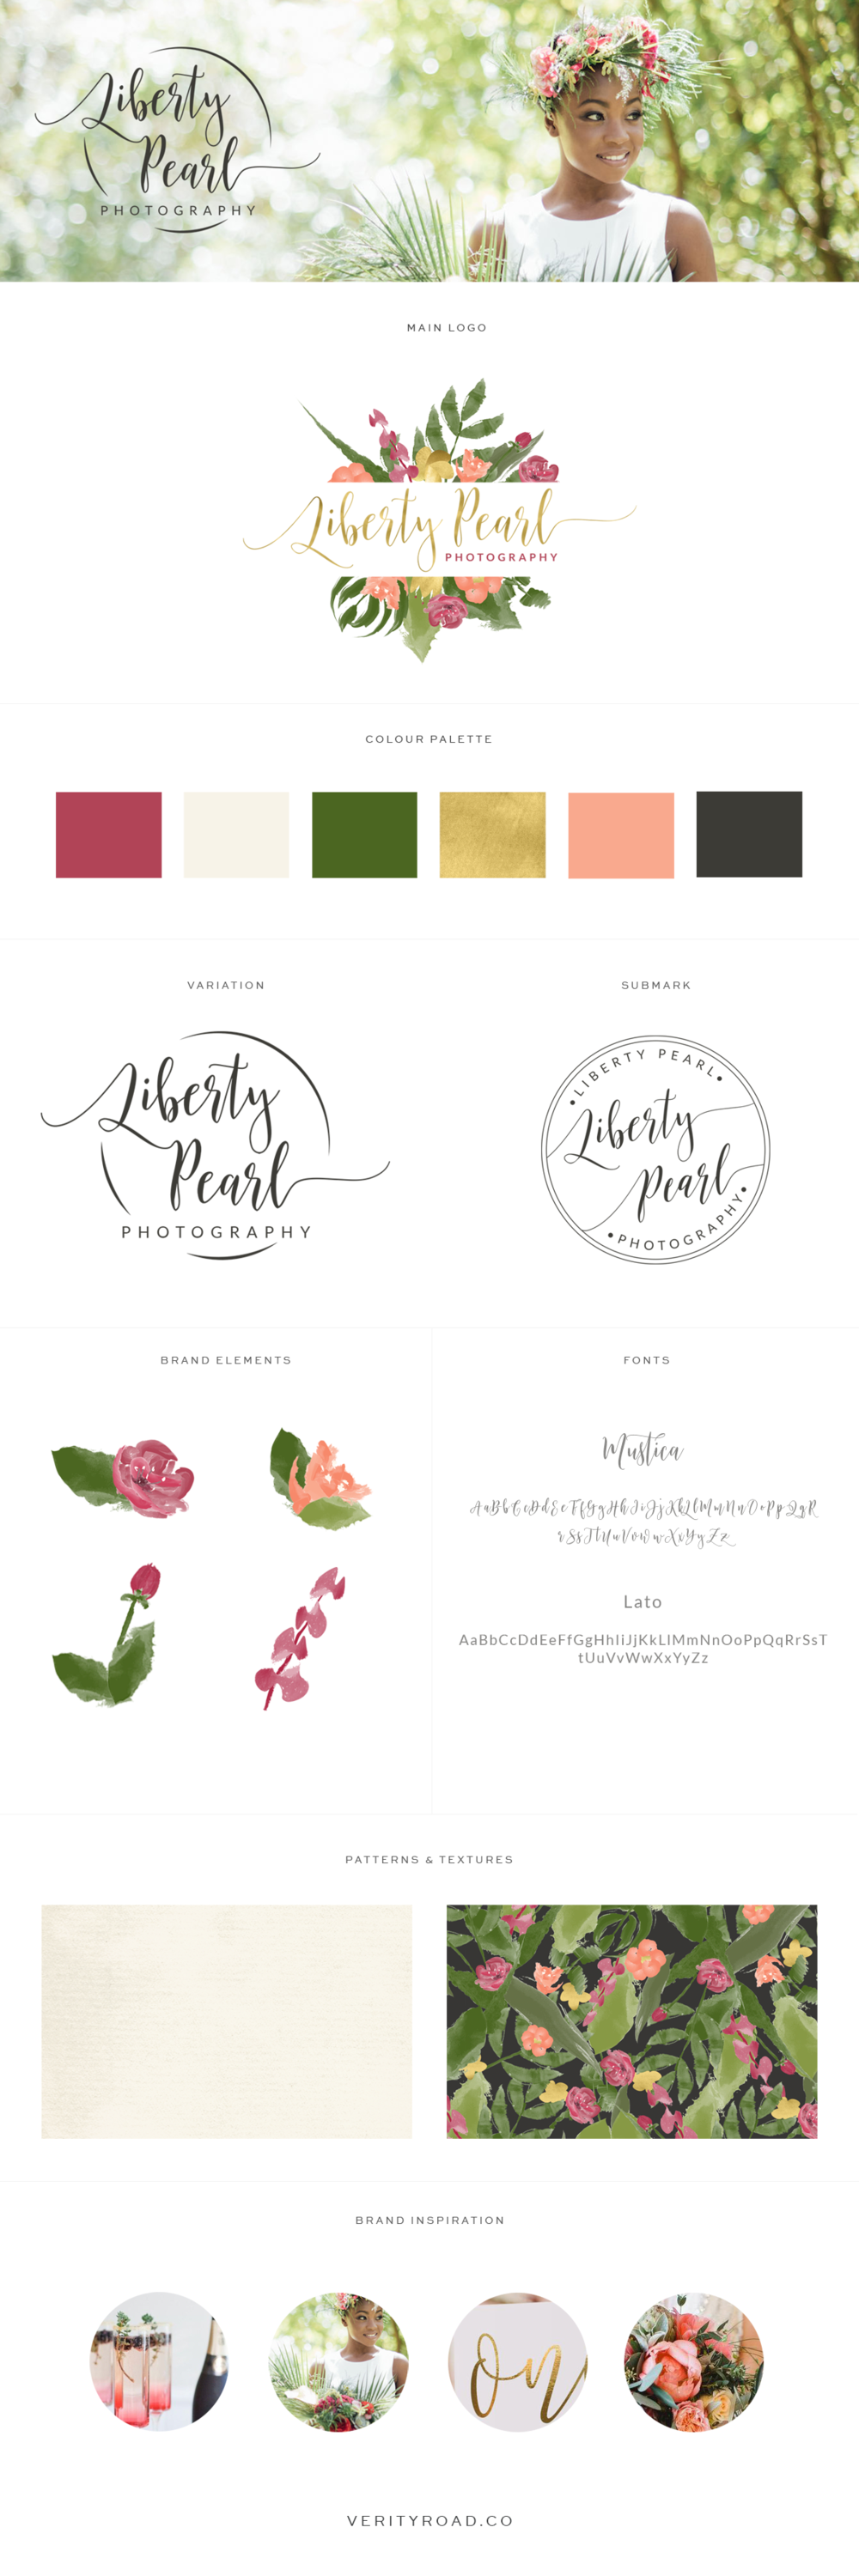 brand board for liberty pearl photography,luxury brand styling and web design for female entrepreneurs. feminine exotic branding, brand style guide, logo, submark, brand elements, script font, sans serif, GREEN, SAGE, BROWN, DEEP RED, CORAL, BRIGHT COLOR PALETTE, FLORAL pattern, flowers business owner, blogger. See more for mood board, social media branding, print materials and website design.